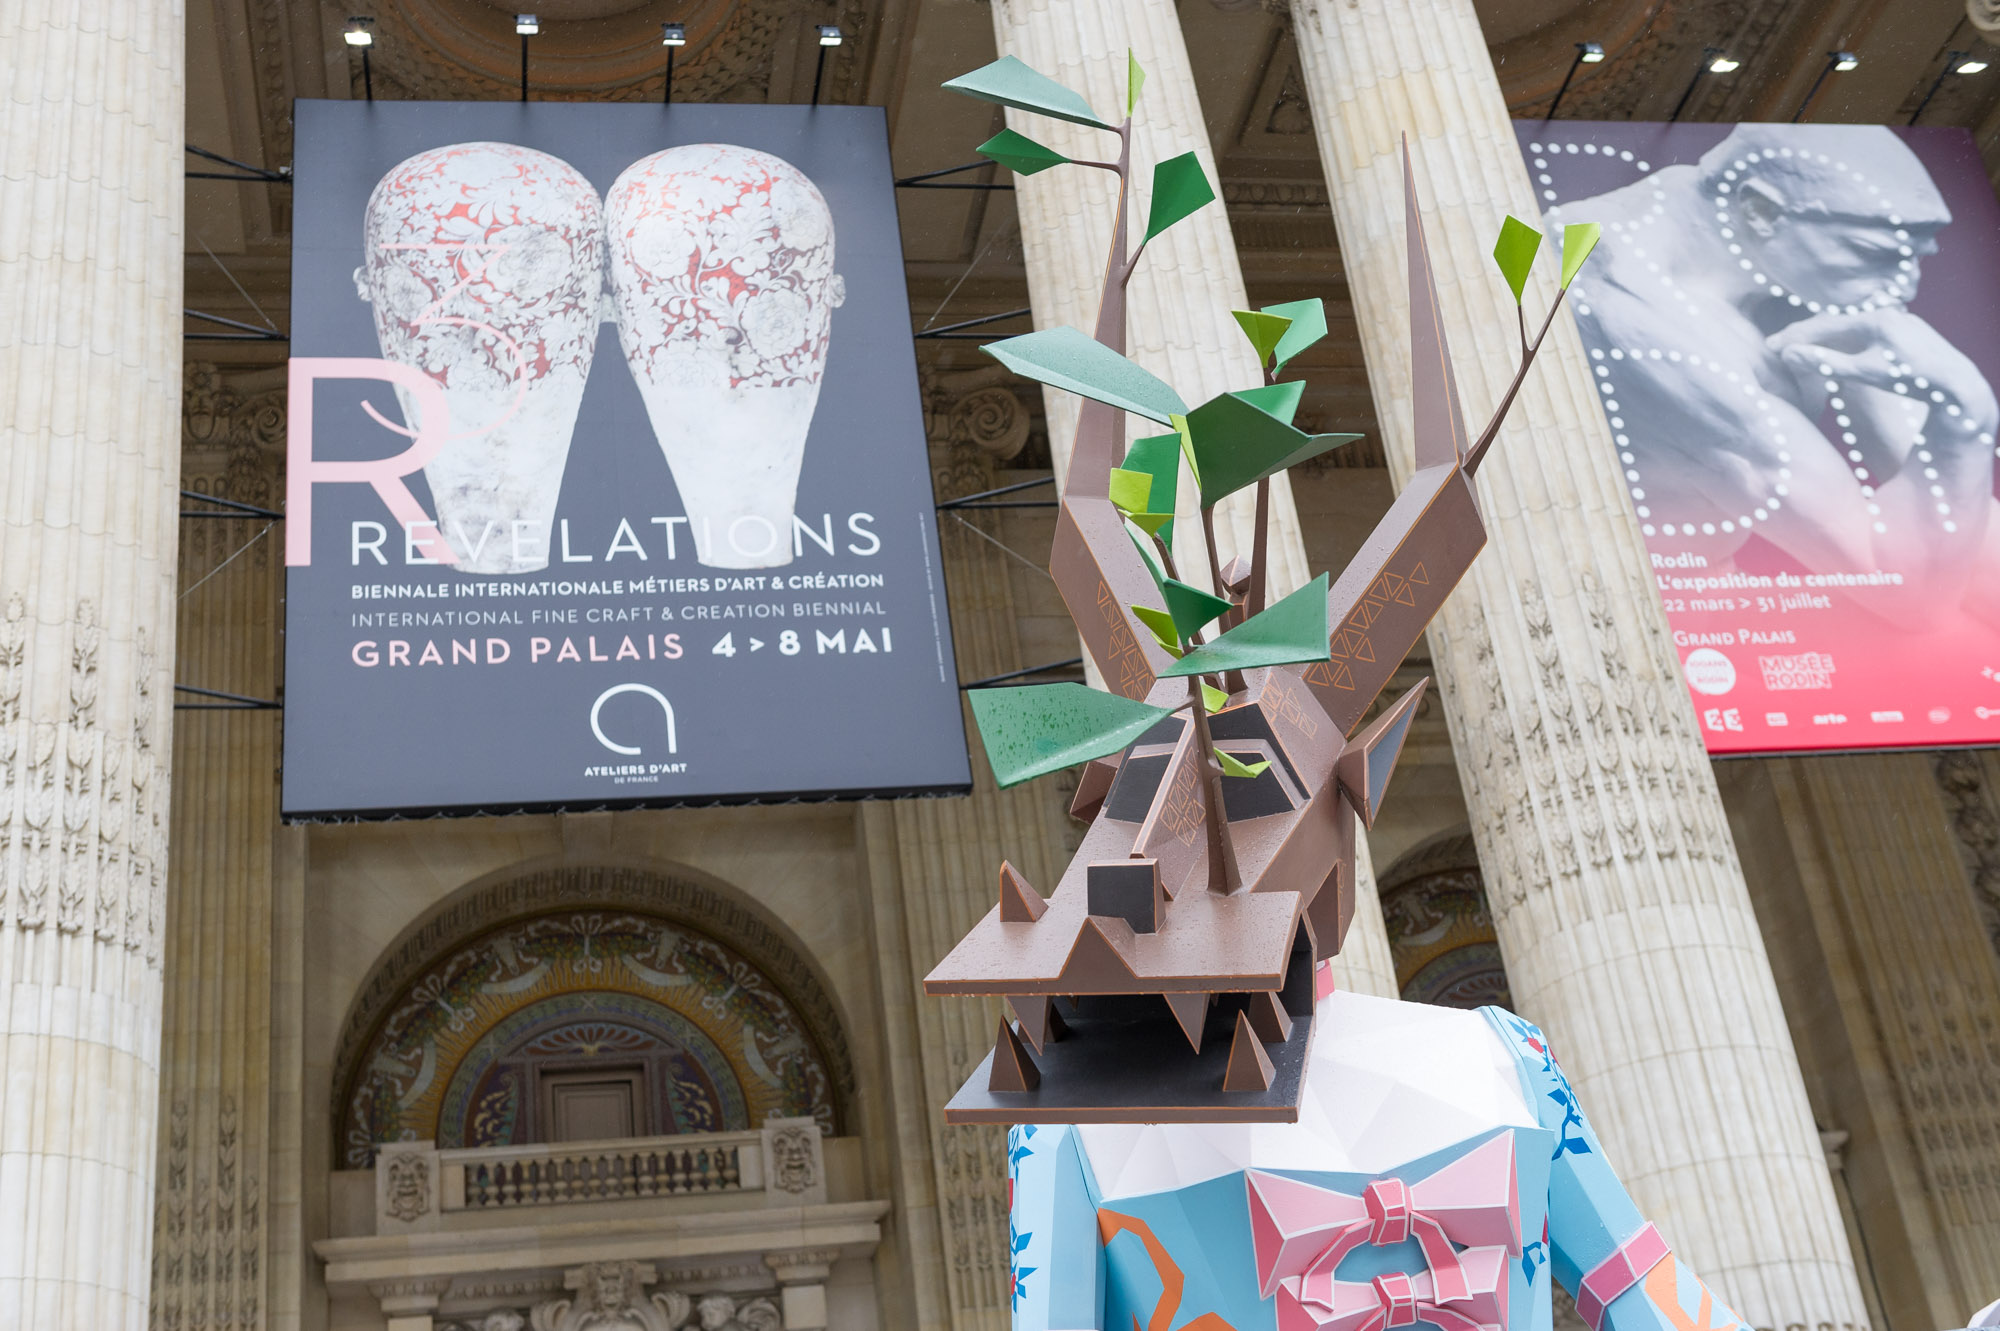 Révélations 2017 Grand Palais Paris